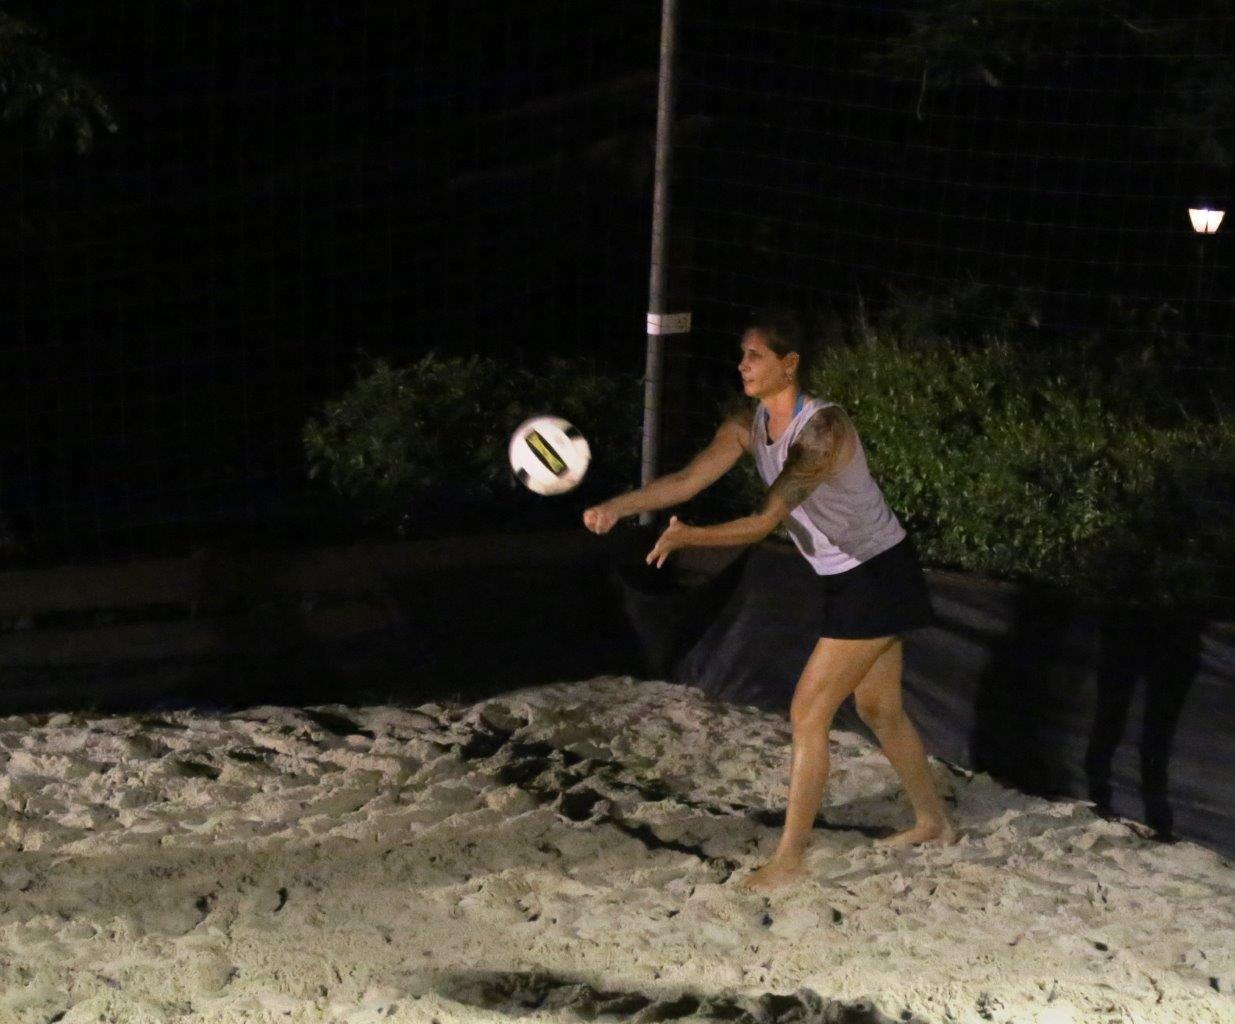 Kimberly even played in a weekly volleyball game